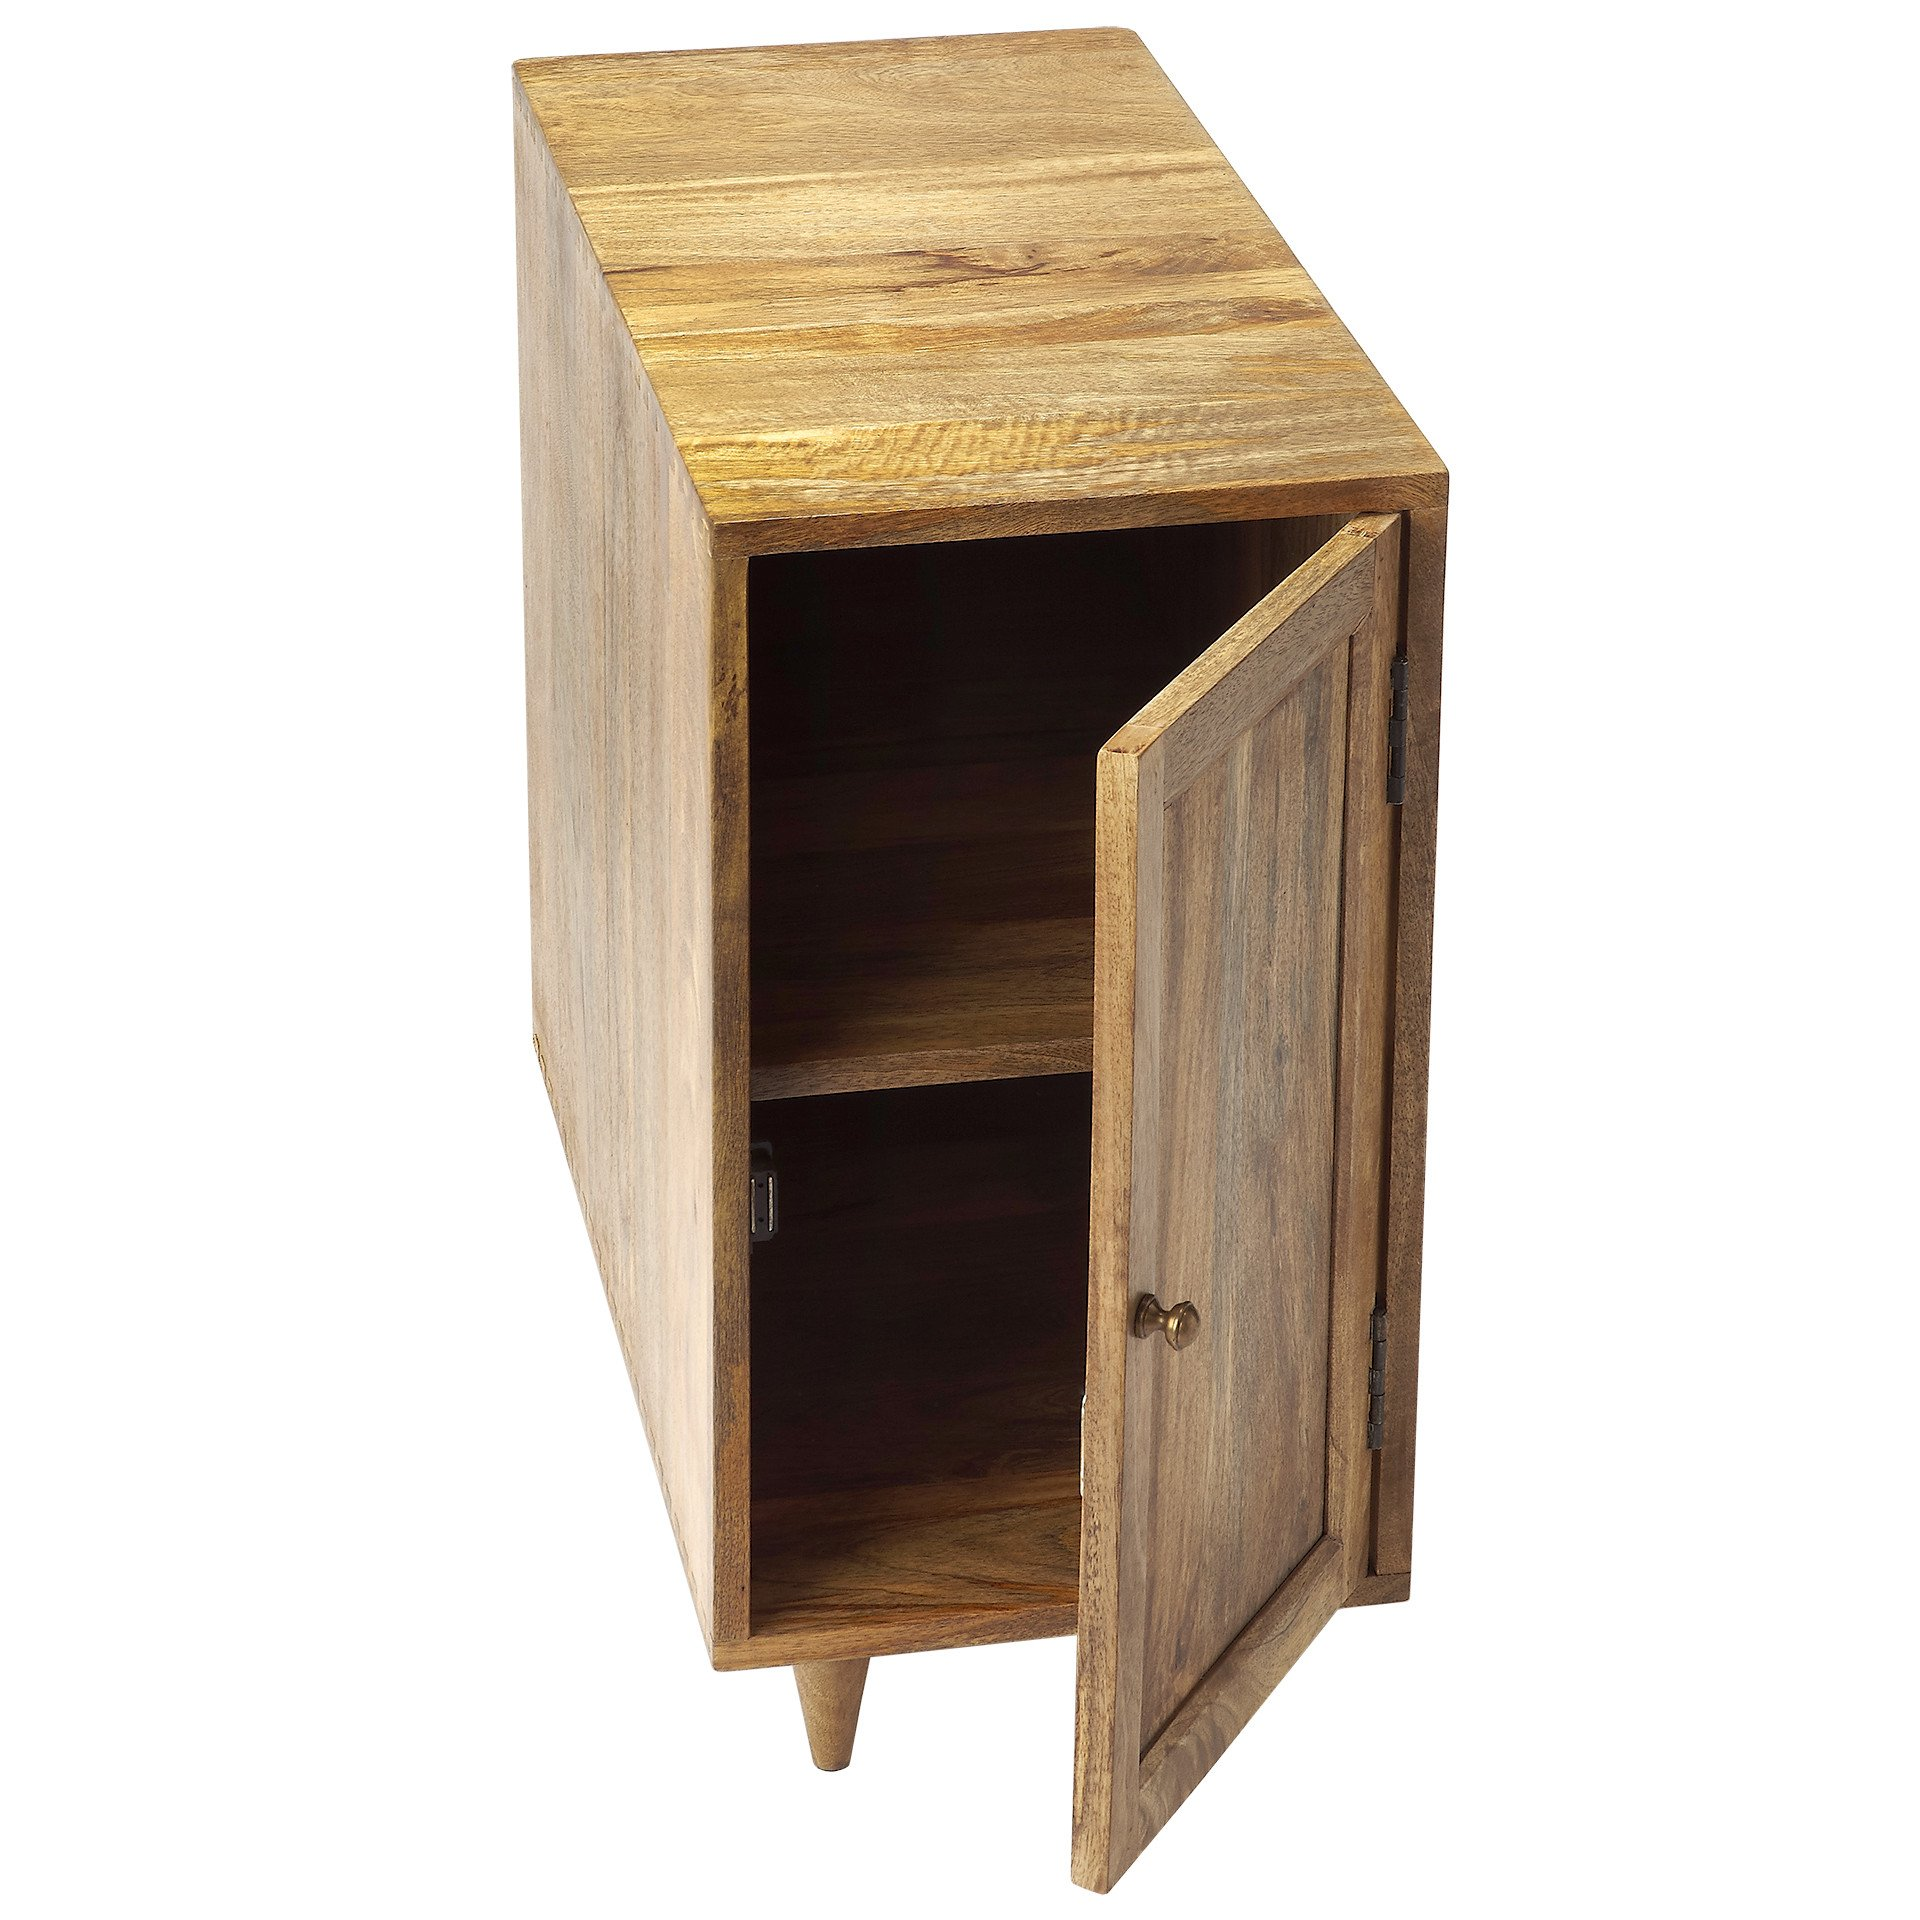 end tables woodwaves mid century modern table storage cabinet wood accent with patio loveseat clearance shadow box coffee pier chairs bath and beyond bar stools plastic garden